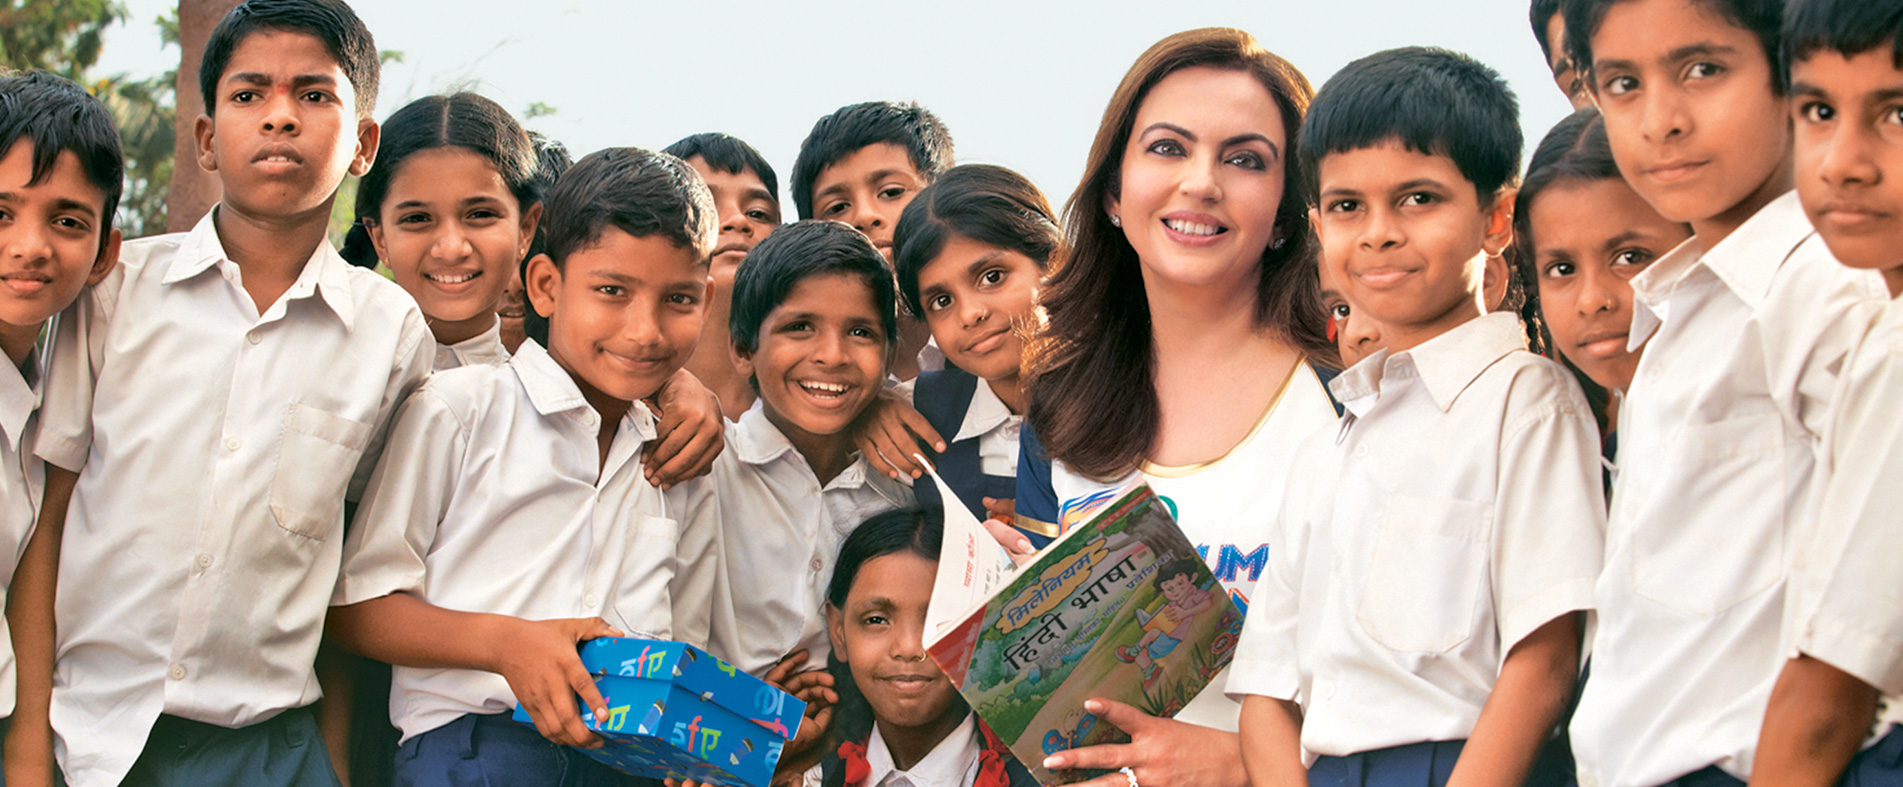 Empowering India by Reliance Foundation